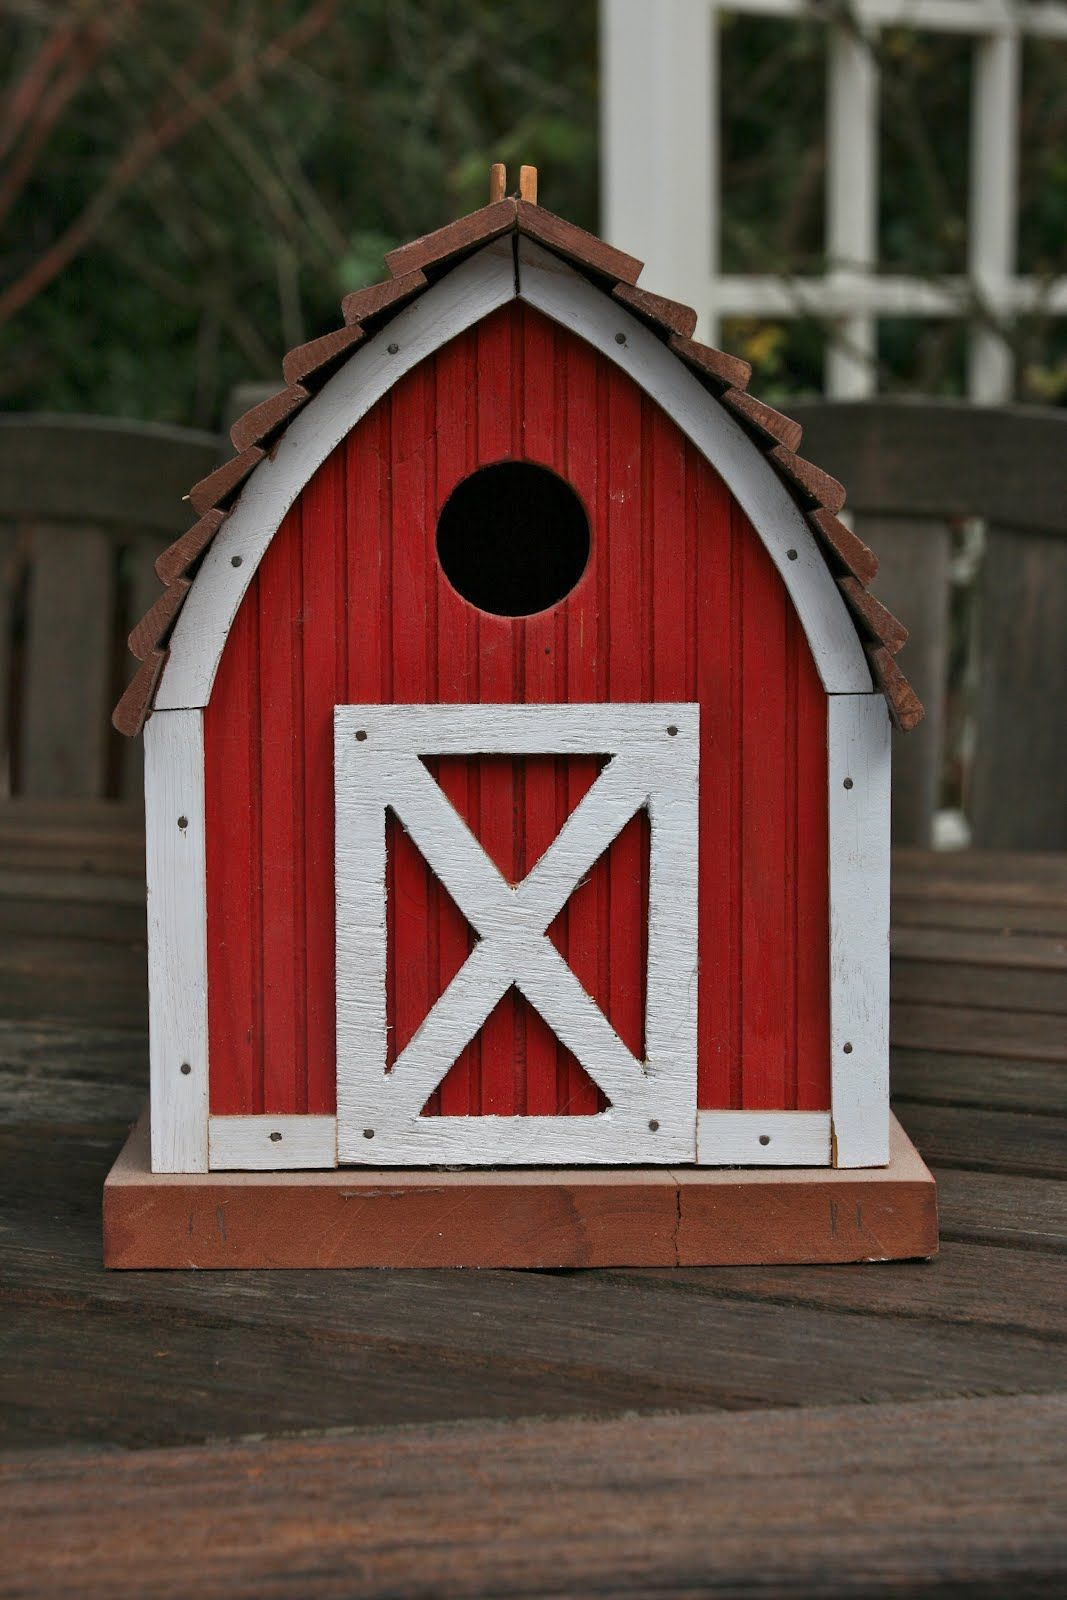 my dad s hobby was making birdhouses he used to surprise me with rh pinterest com